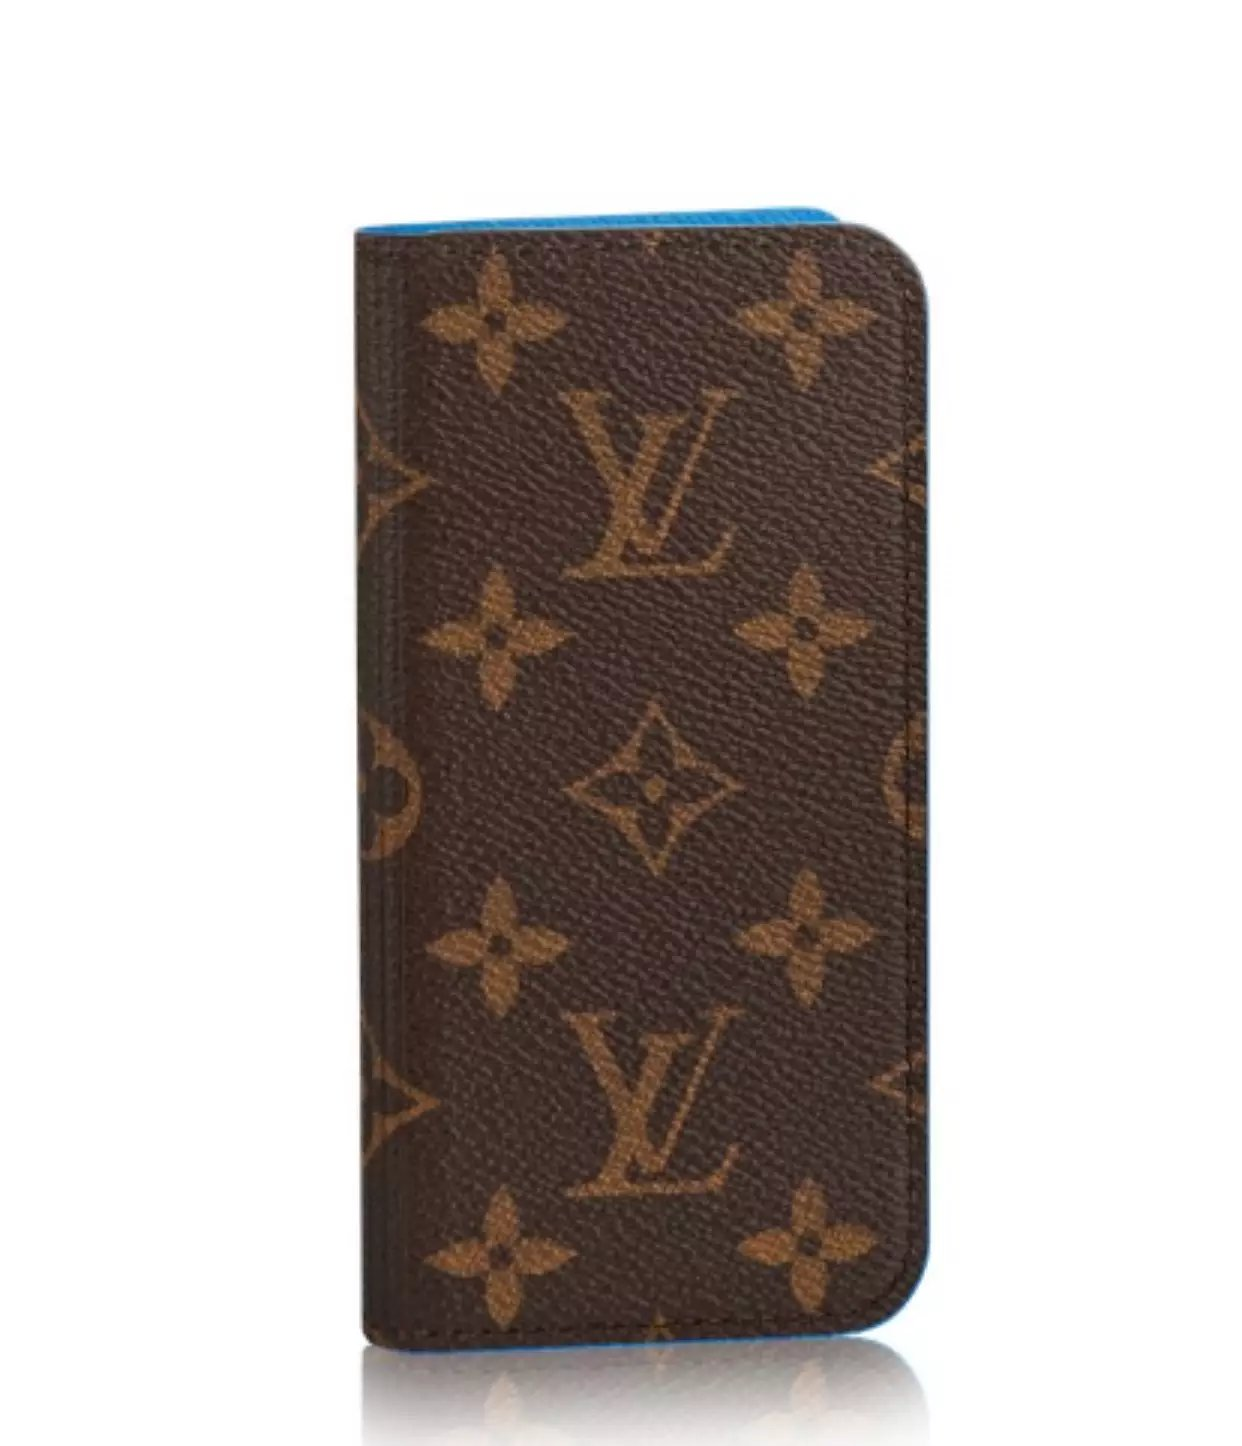 individuelle iphone hülle iphone hülle bedrucken lassen günstig Louis Vuitton iphone7 Plus hülle die besten hüllen für iphone 7 Plus iphone 6 verkaufen iphone 7 Plus gehäu7 kaufen was7rdichte hülle iphone hülle iphone 7 Plus apple iphone cover drucken